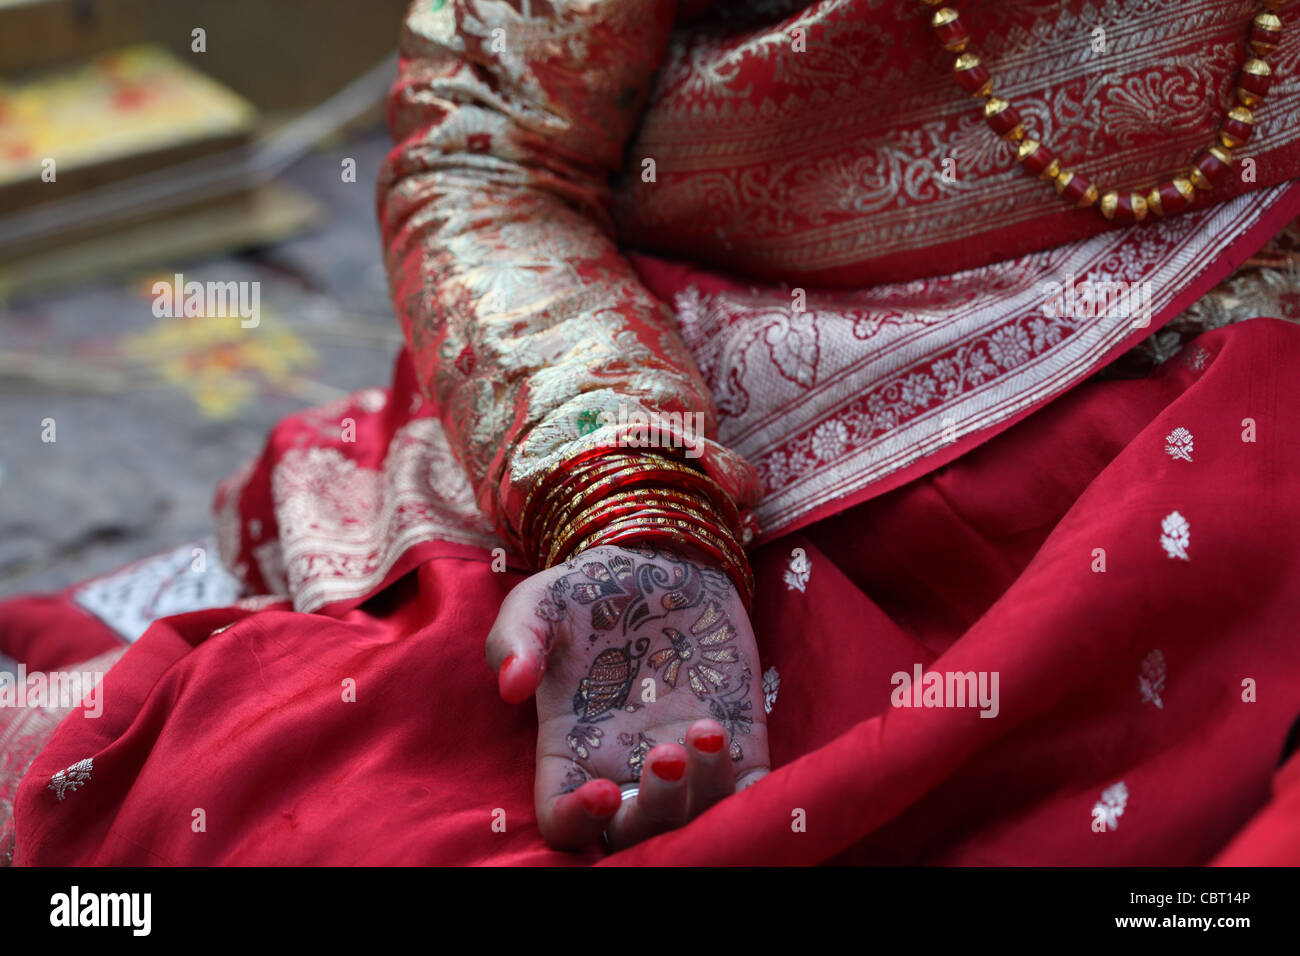 Traditional Ceremonial Henna Tattoo of Hindu Rite of passage for young Nepali Girl - Stock Image